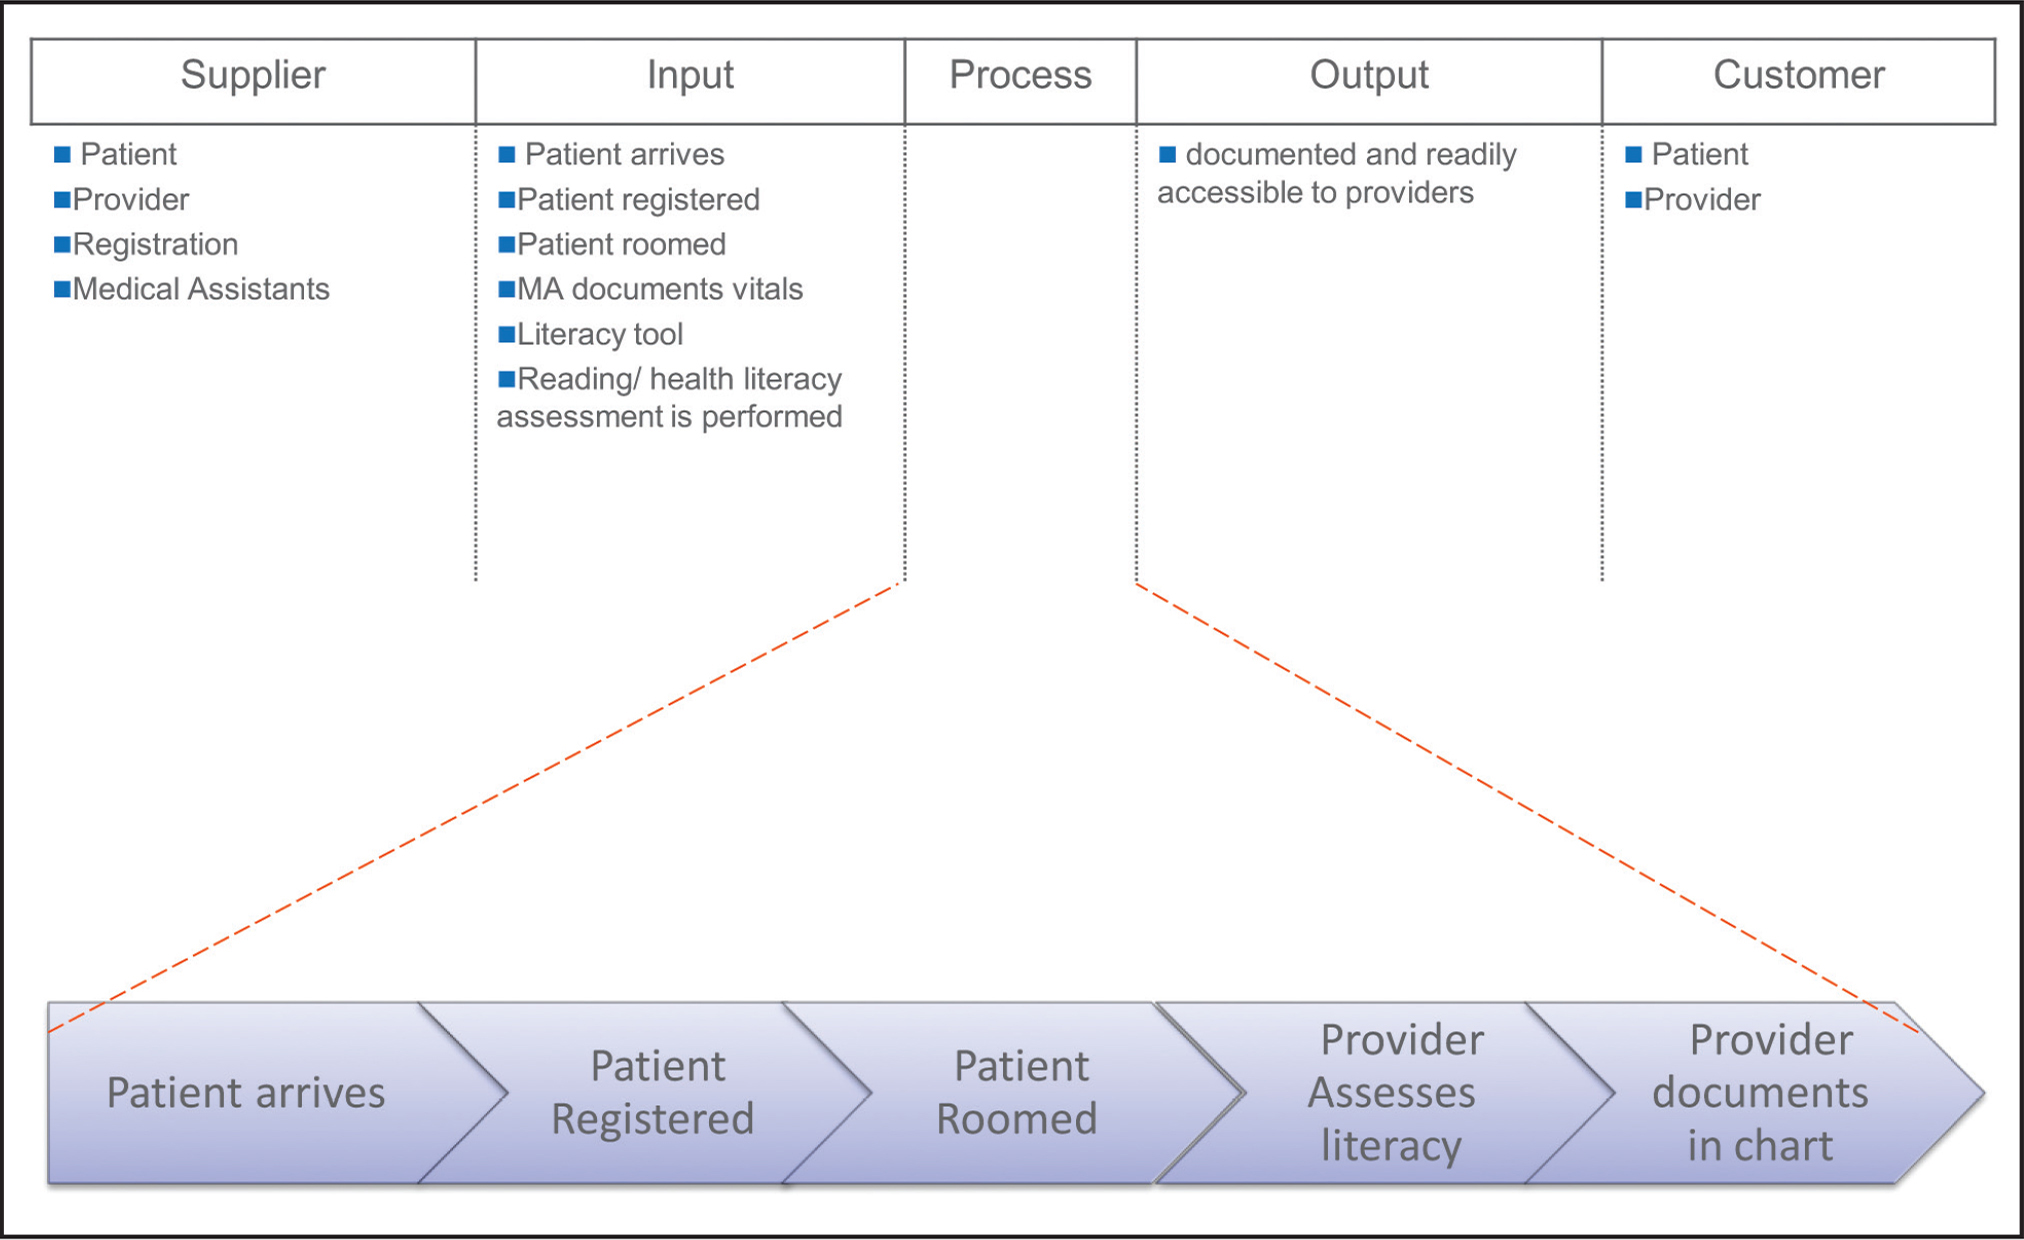 Schematic of SIPOC (supplier, input, process, output, customer) analysis.